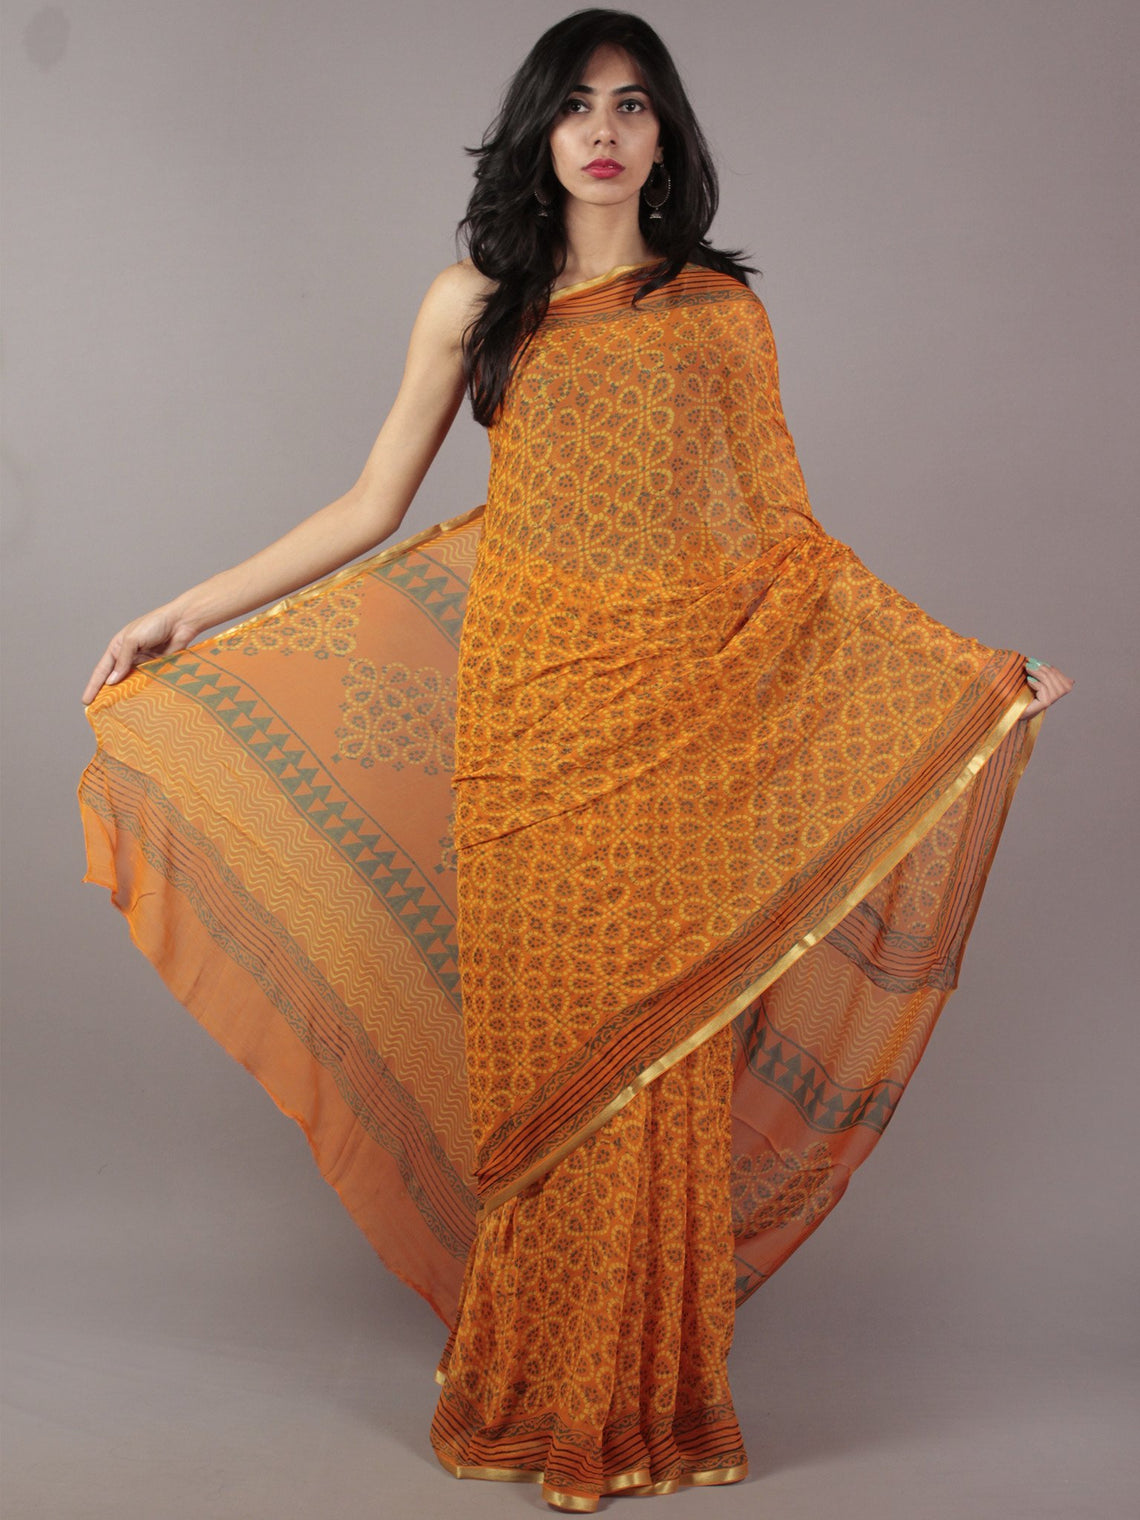 Orange Yellow Green Black Hand Block Printed Chiffon Saree - S031701833